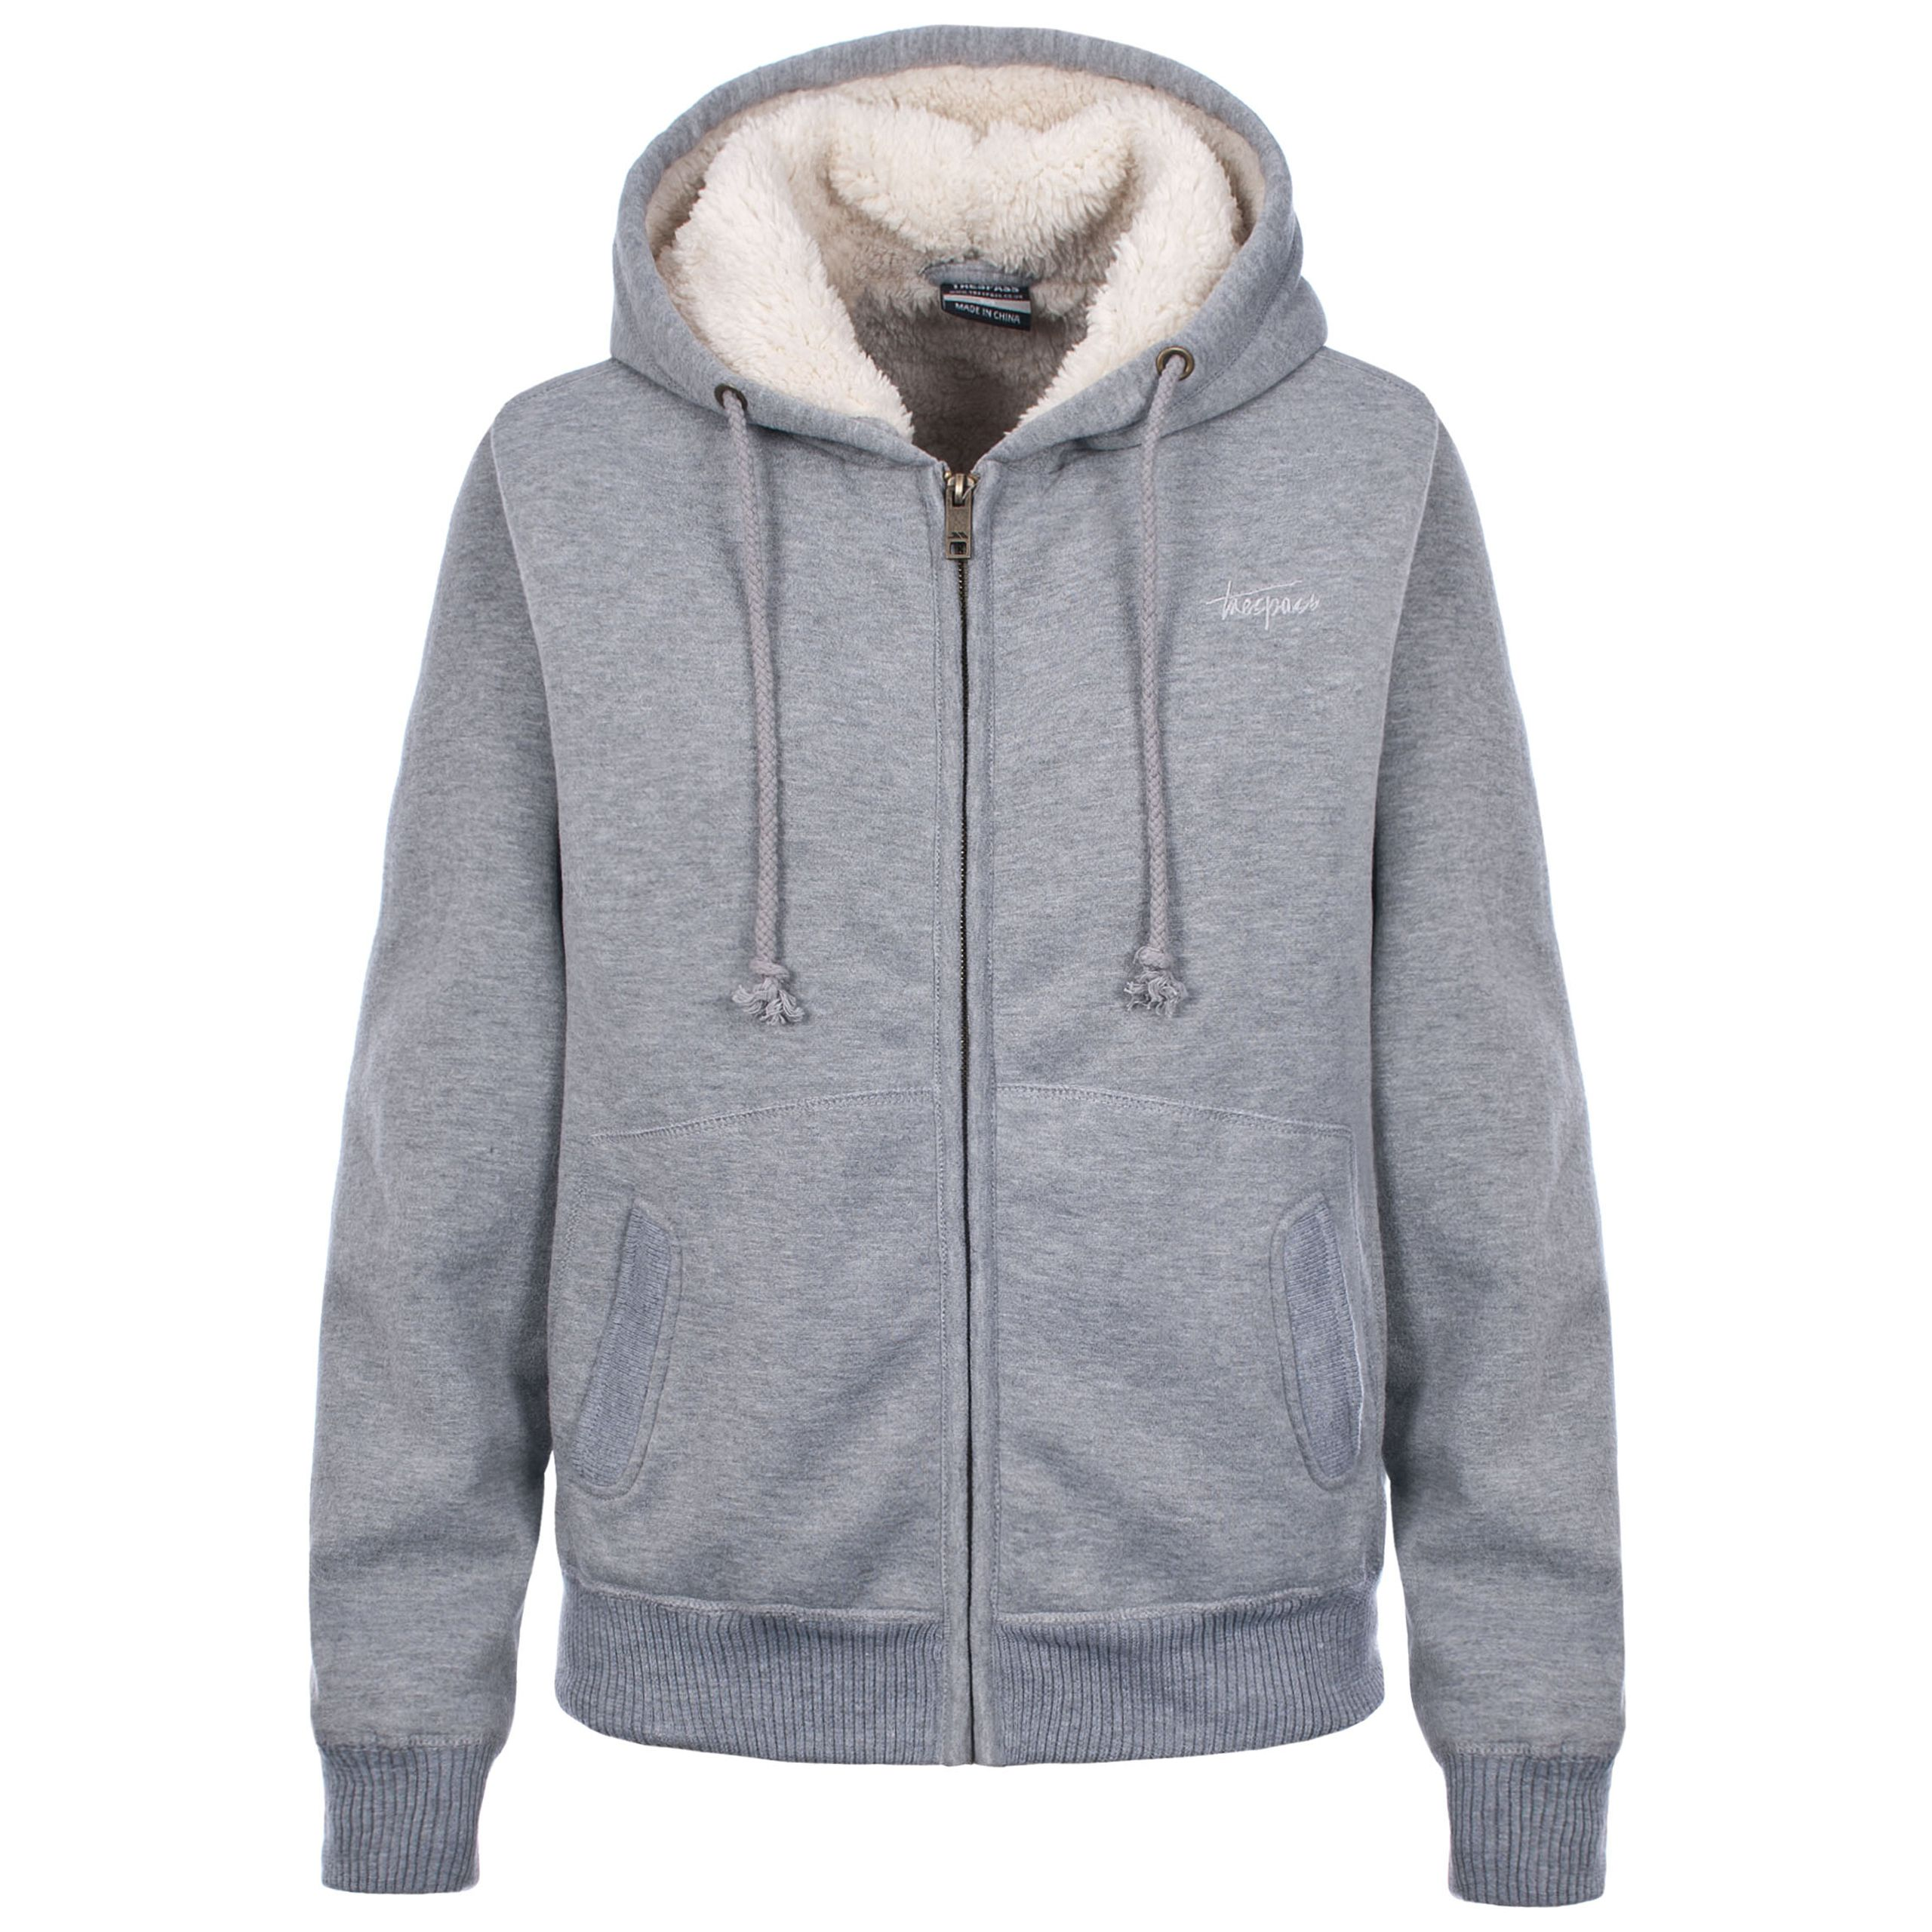 This extra-warm women's hoodie is the perfect choice for winter. It has a